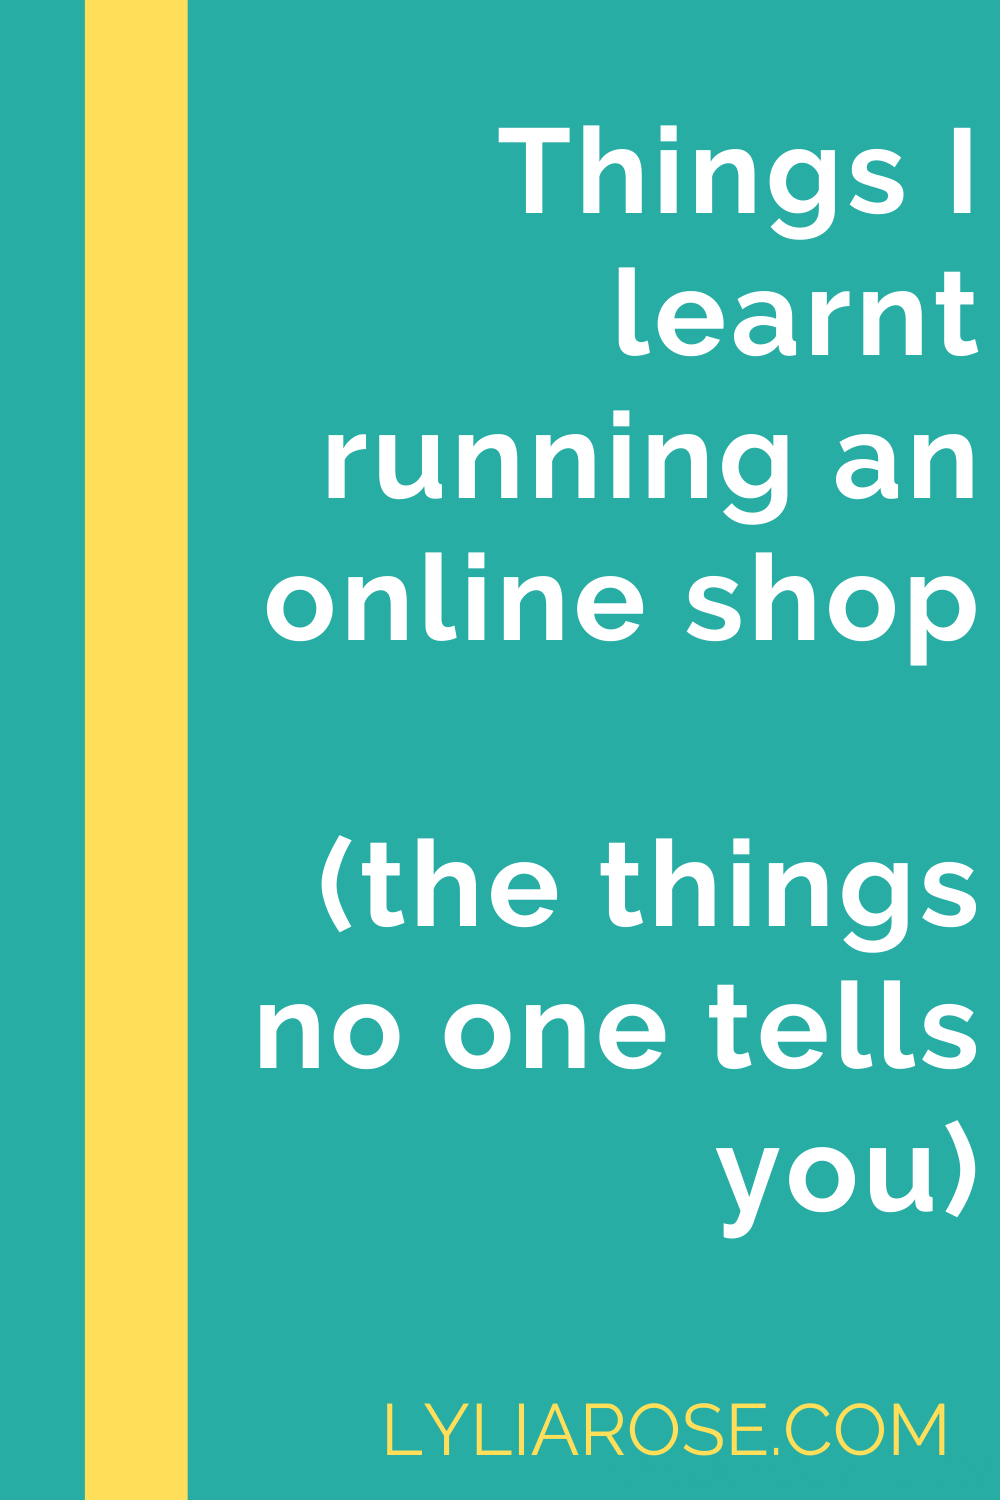 Things Ive Learnt from Running My Own Shop Business (the things no one tel